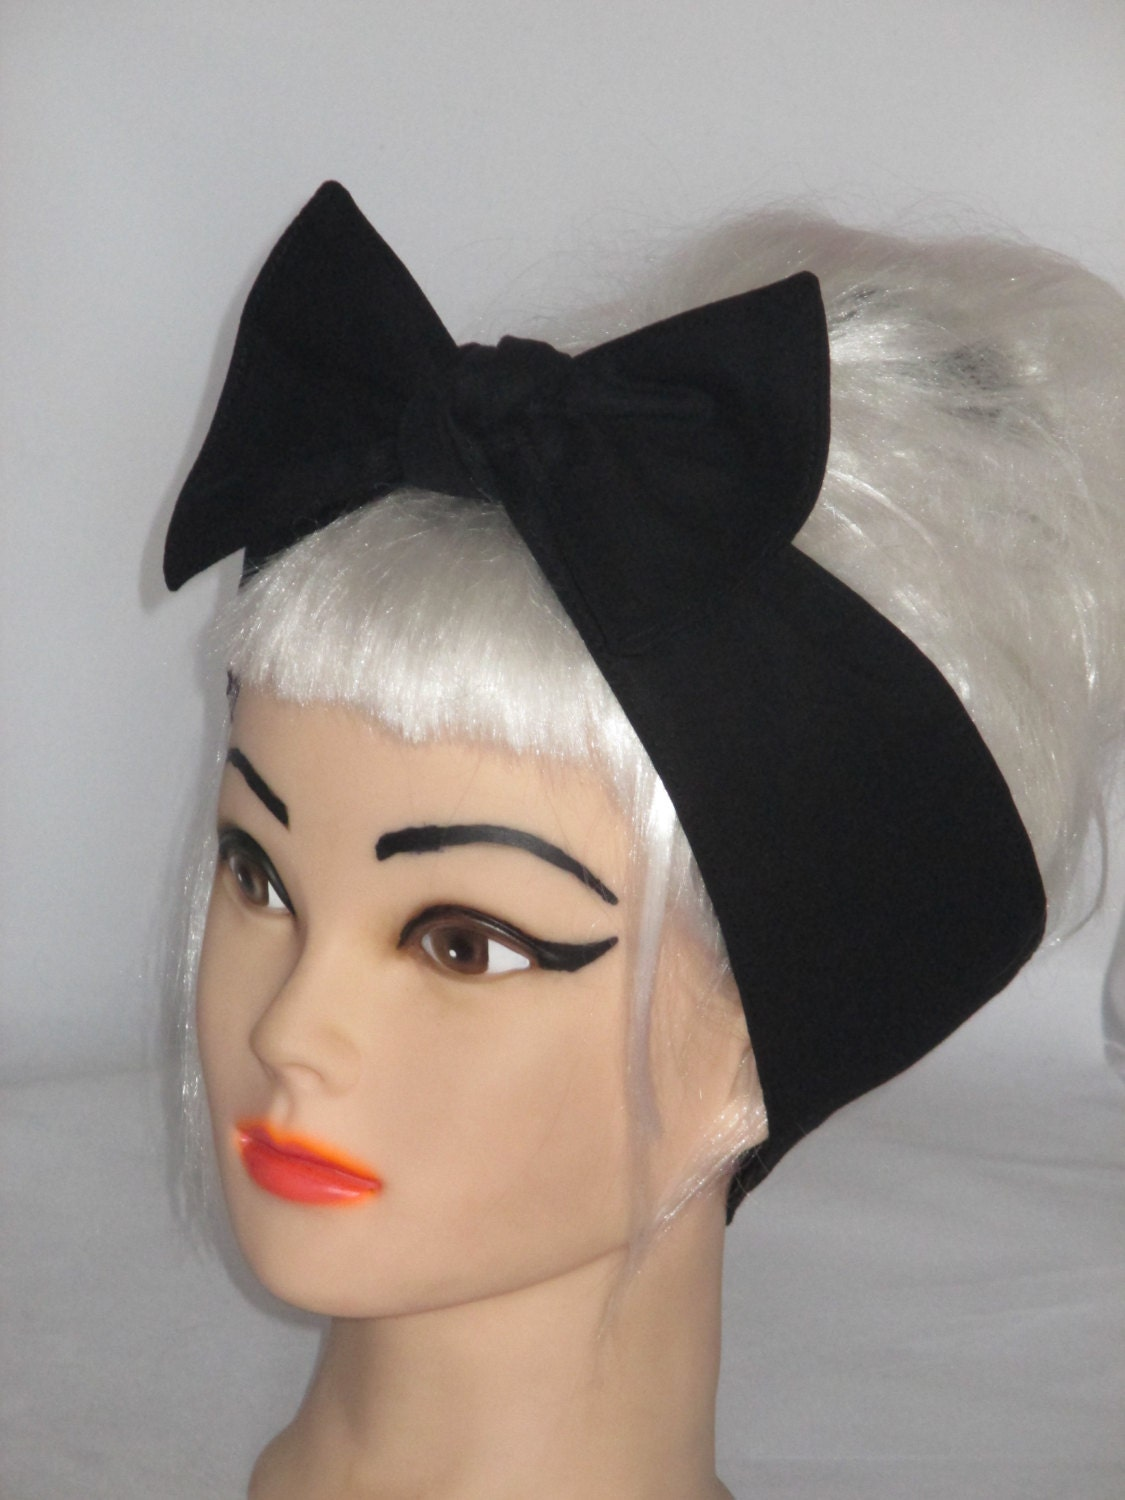 You searched for: black bow headband! Etsy is the home to thousands of handmade, vintage, and one-of-a-kind products and gifts related to your search. No matter what you're looking for or where you are in the world, our global marketplace of sellers can help you .